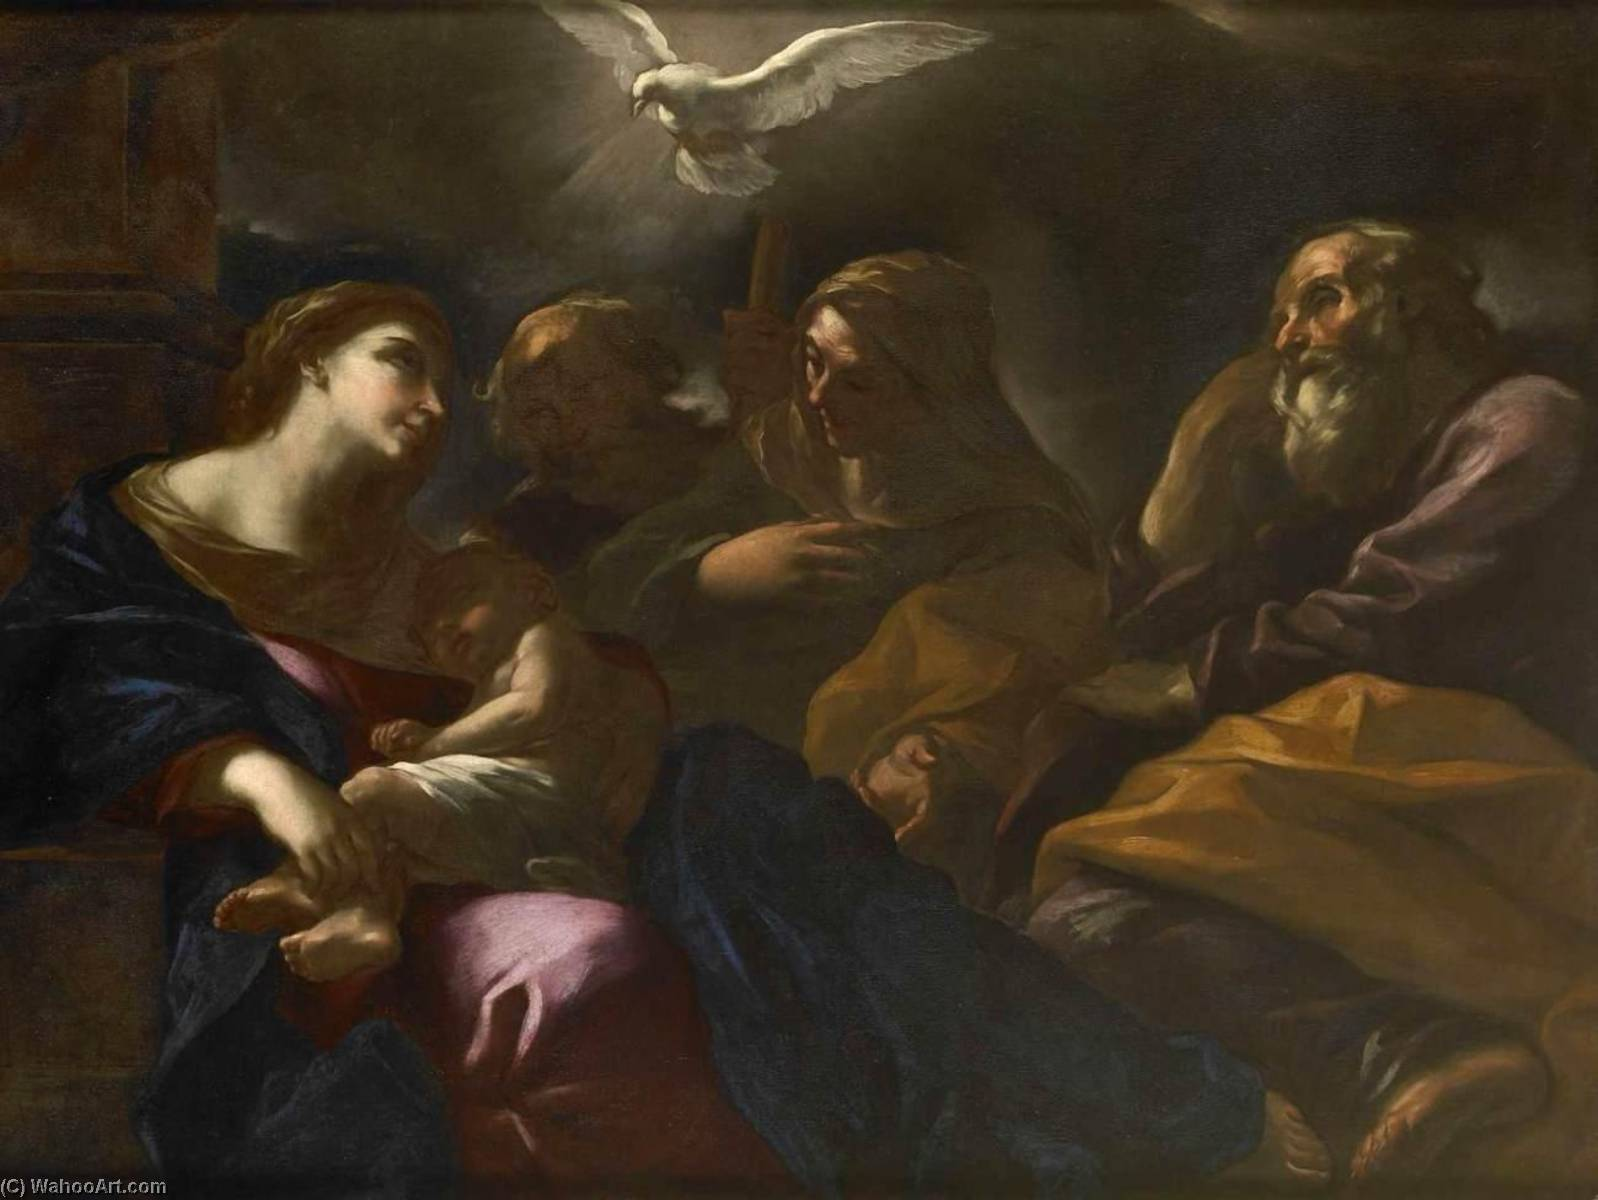 Order Reproductions | Holy Family with Sts Anne and Joachim, 1670 by Giovan Battista Beinaschi | WahooArt.com